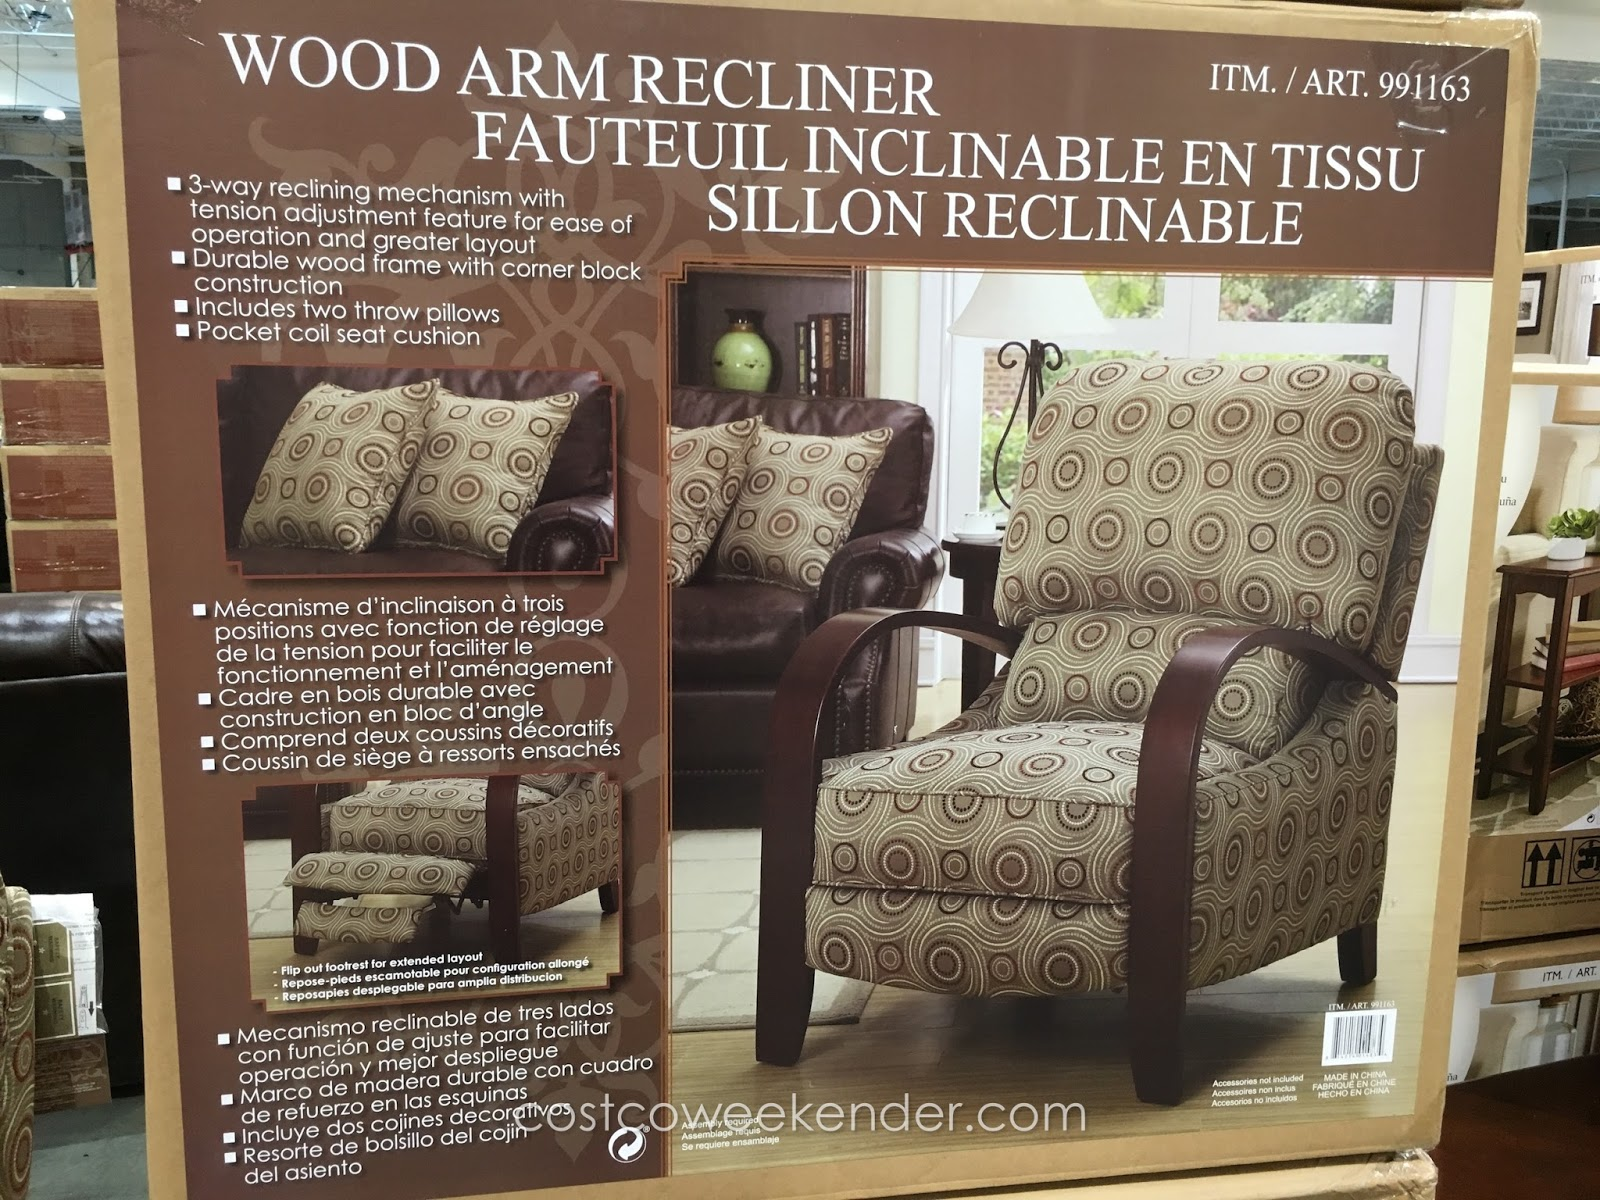 Synergy Home Furnishings Wood Arm Recliner u2013 Unique look comfortable rest & Synergy Home Furnishings Wood Arm Recliner Chair | Costco Weekender